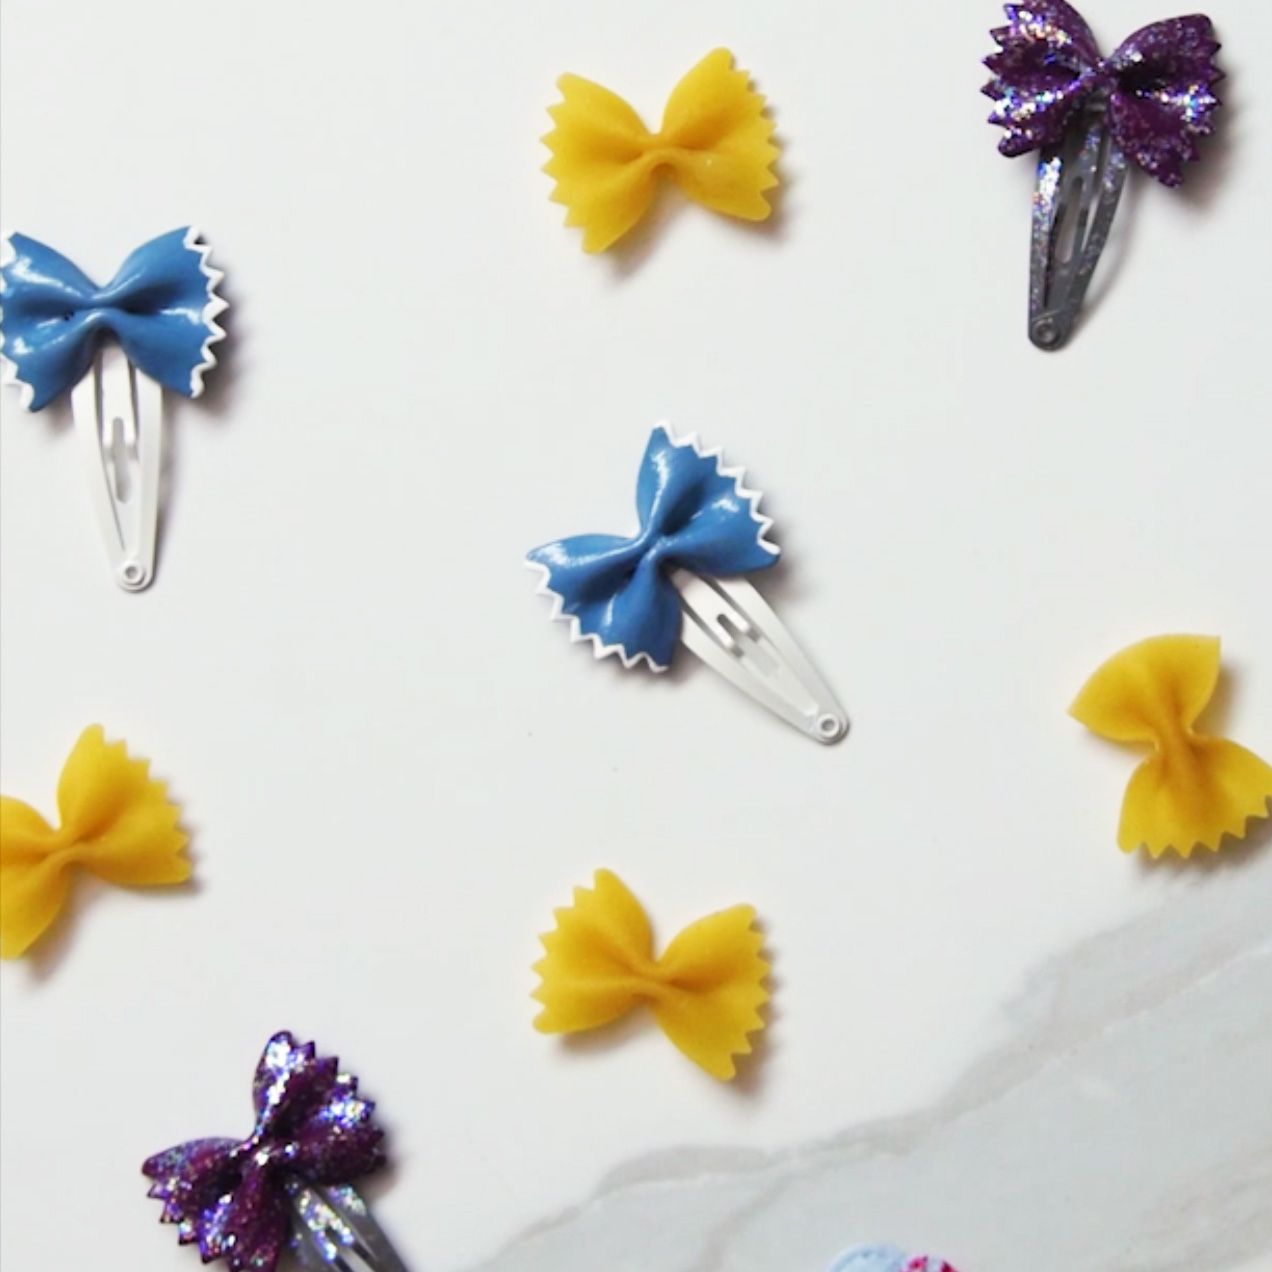 dry bowtie pasta and hair clips